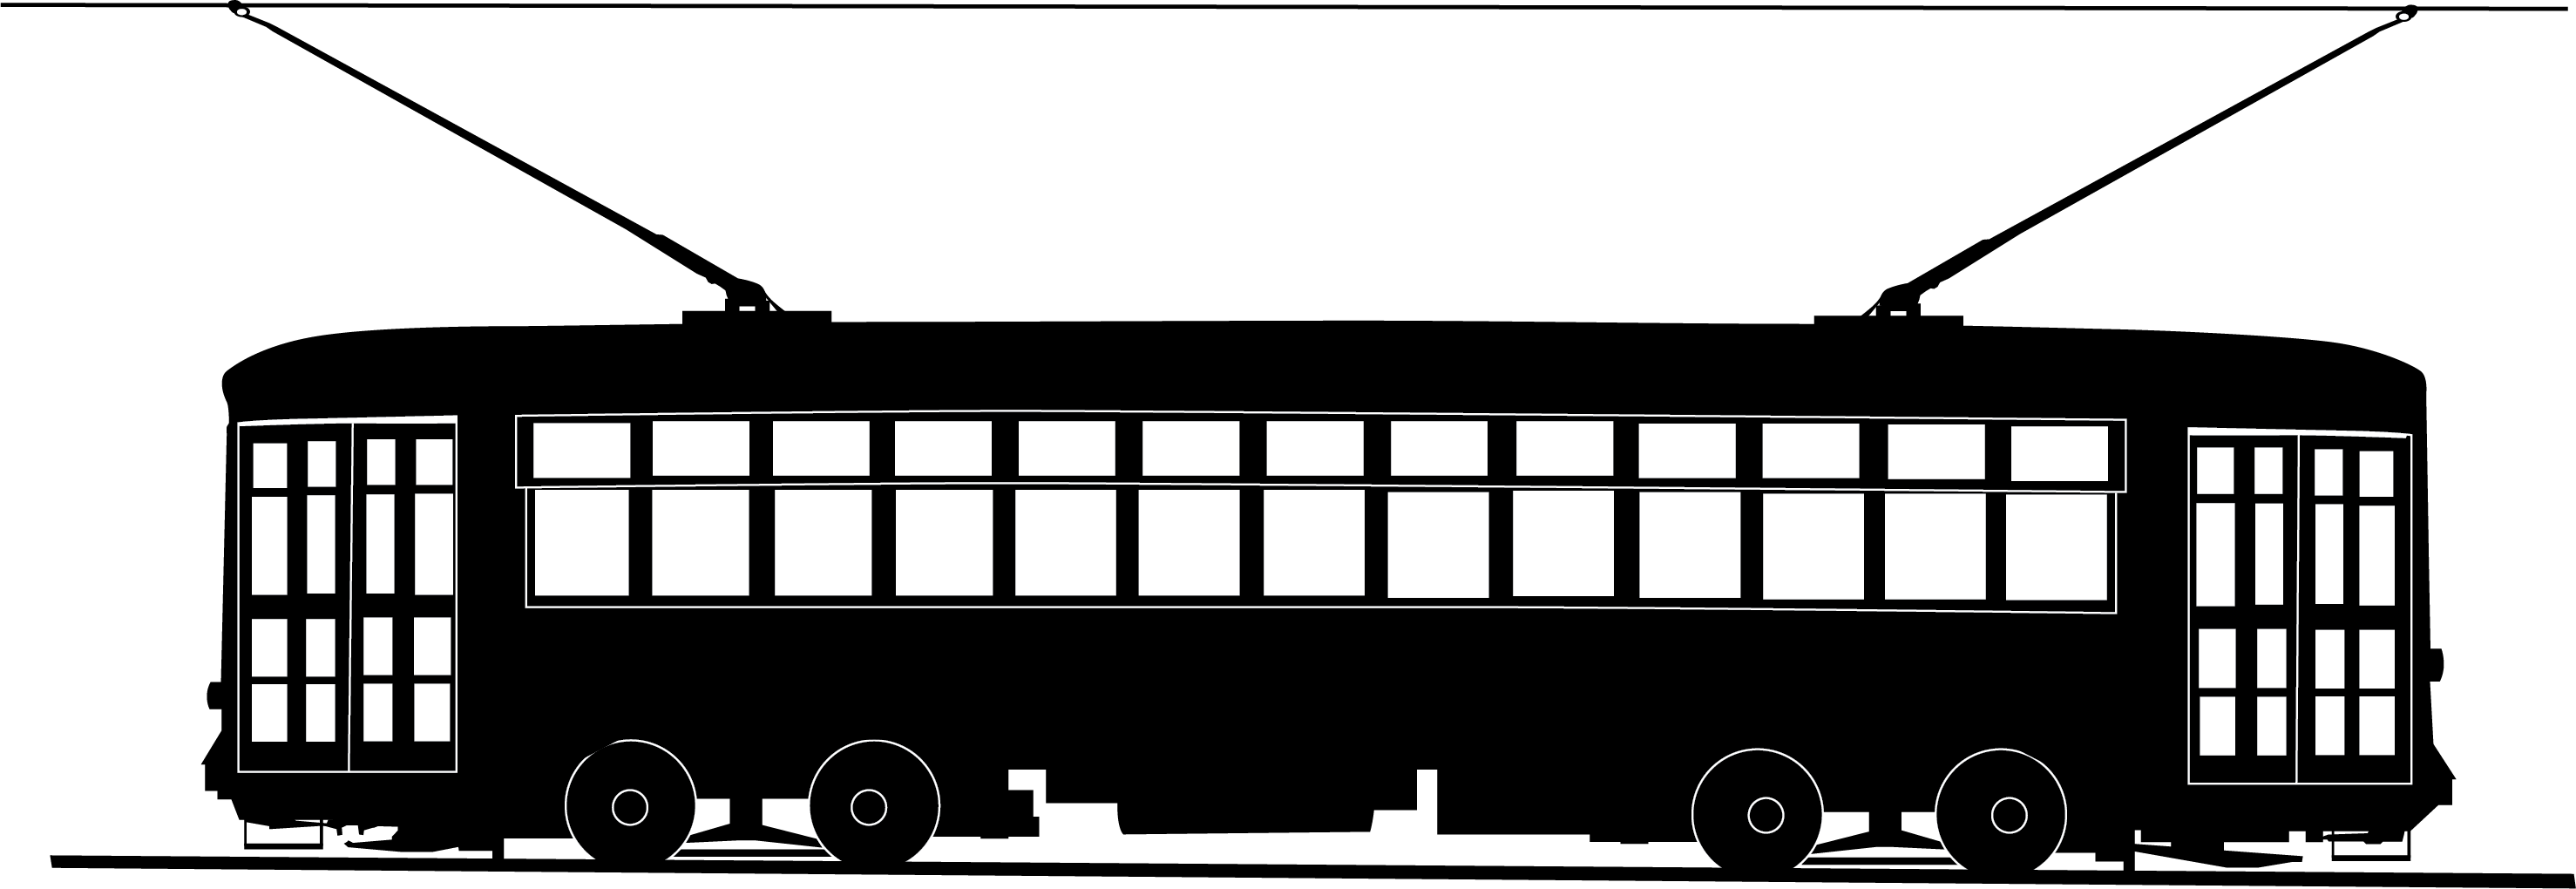 picture transparent library New streetcar trolley graphic. Orleans clipart.